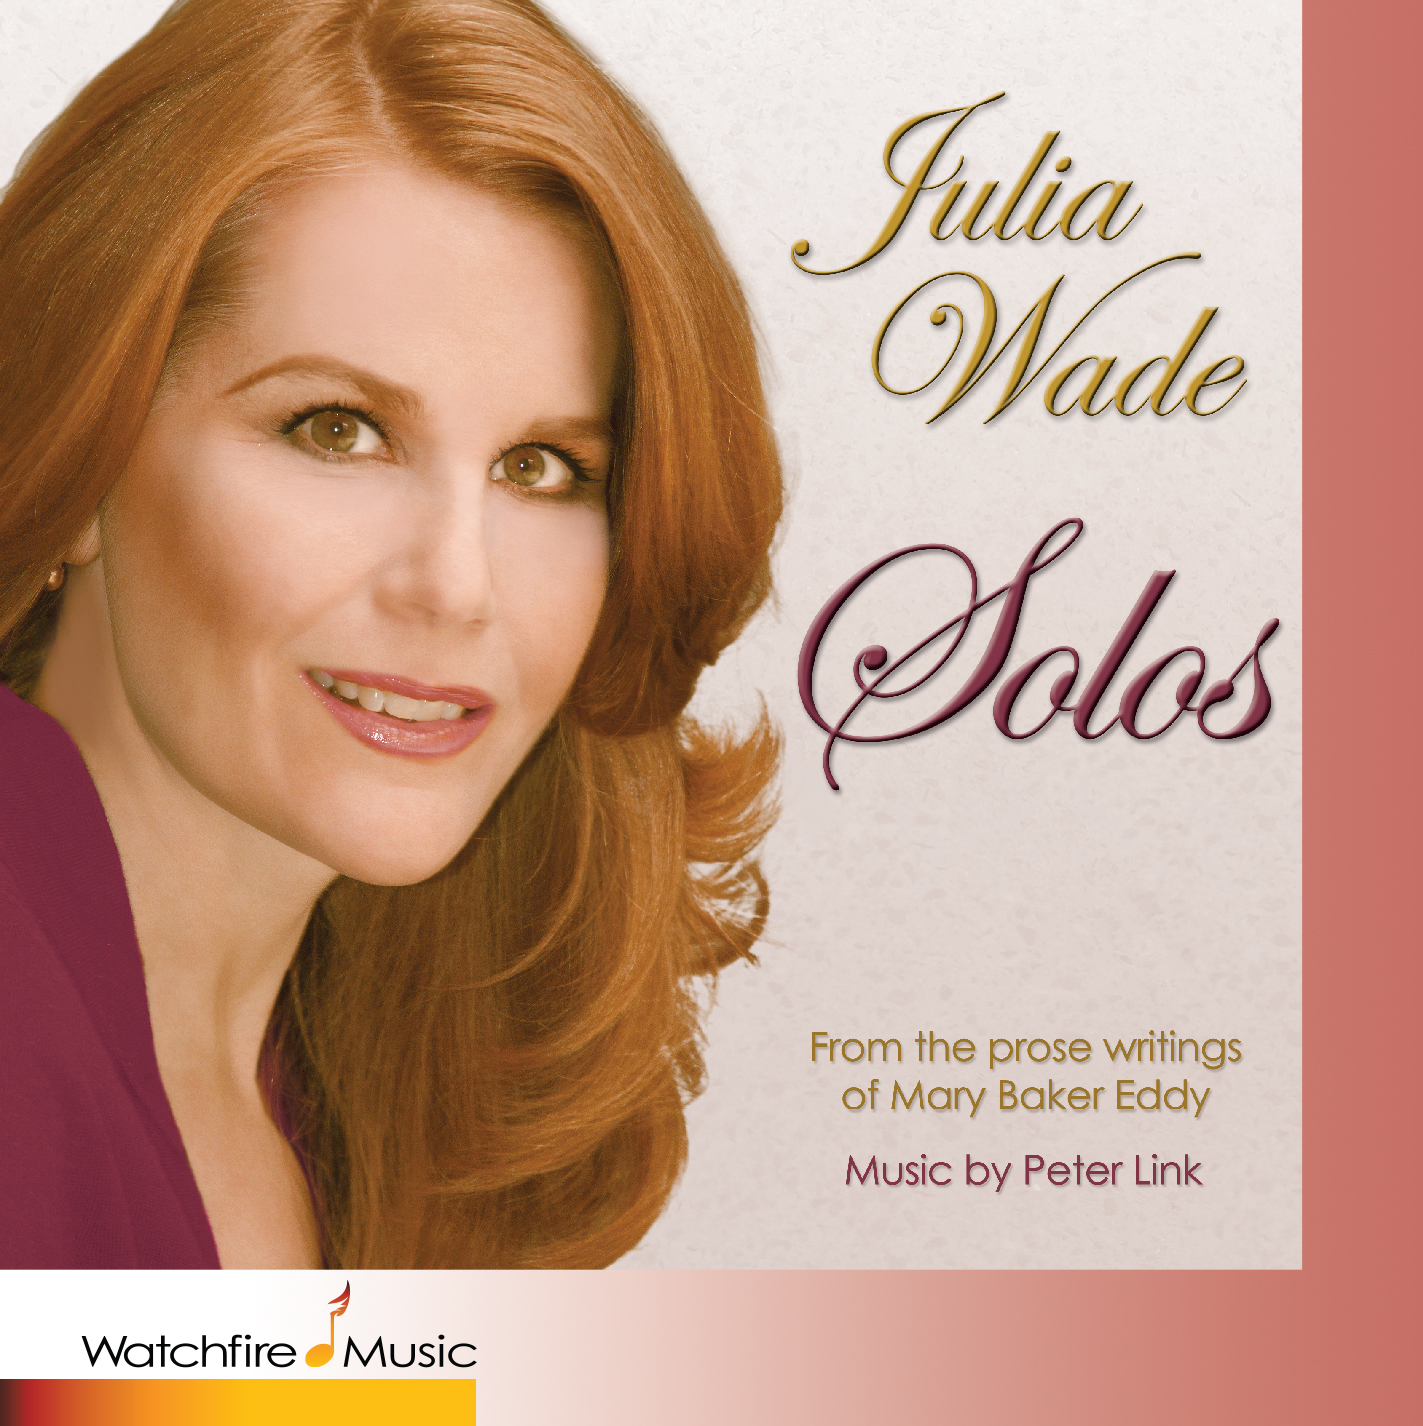 Julia's much-anticipated album,   Solos    from the prose writings of Mary Baker Eddy,  offers 12 new original inspirational songs by Peter Link. He set to music iconic and beloved prose text from Mrs. Eddy's seminal book, Science and Health with Key to the Scriptures.  This CD is offered as gift to spiritual seekers everywhere, and especially to the worldwide church community for whom Julia sang for 7 years as the Soloist at the international headquarters of the Christian Science church in Boston, MA. Julia and Peter wanted to share the rich inspiration they found as a result of Julia's wonderful 7-year journey at the First Church of Christ, Scientist in Boston. They hope that you will enjoy discovering or perhaps rediscovering the rich meanings contained in these songs.   Download, Purchase and    Listen to the Music here.